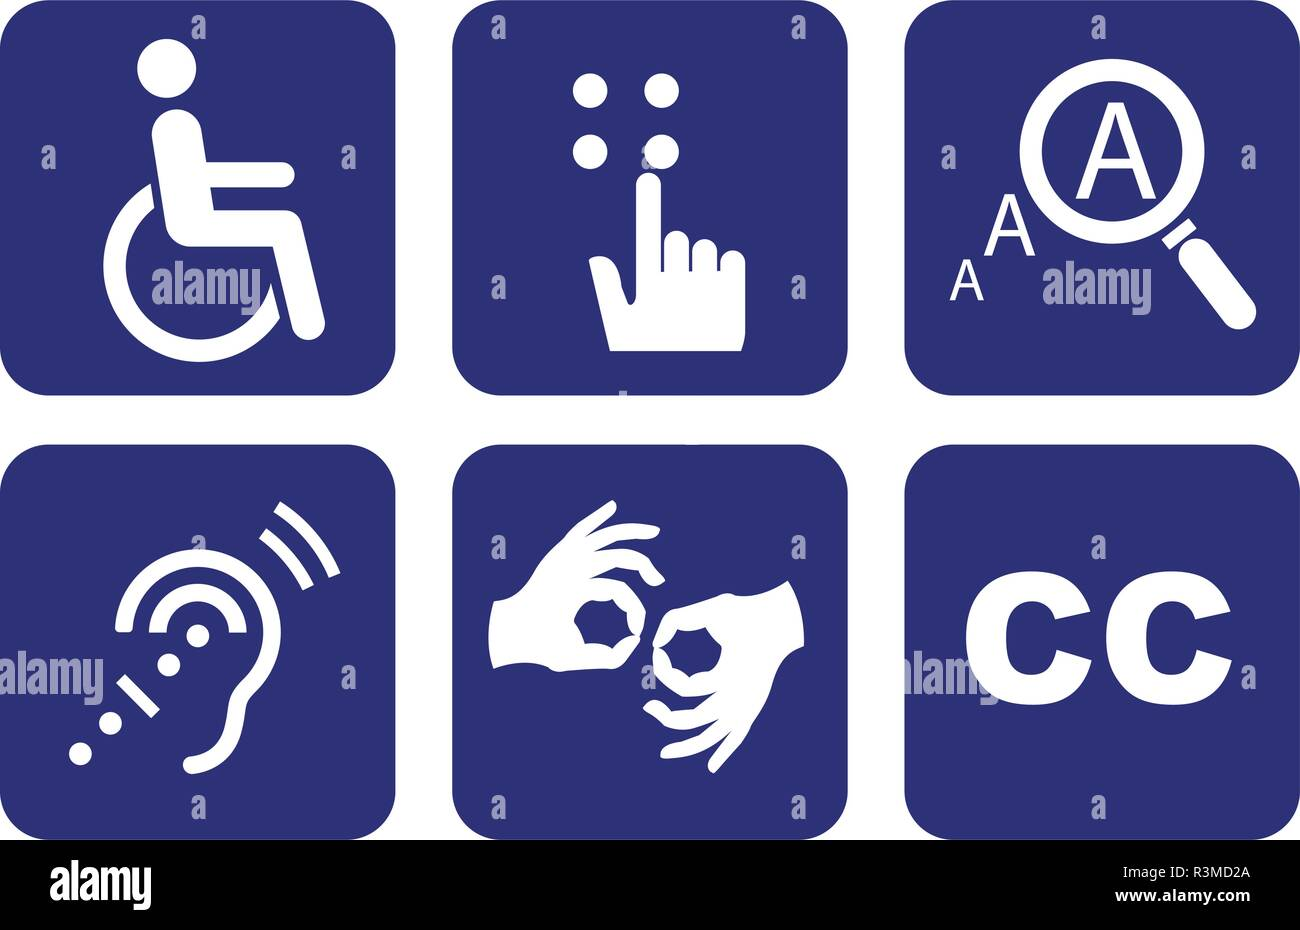 Universal Symbols of Accessibility - Stock Image